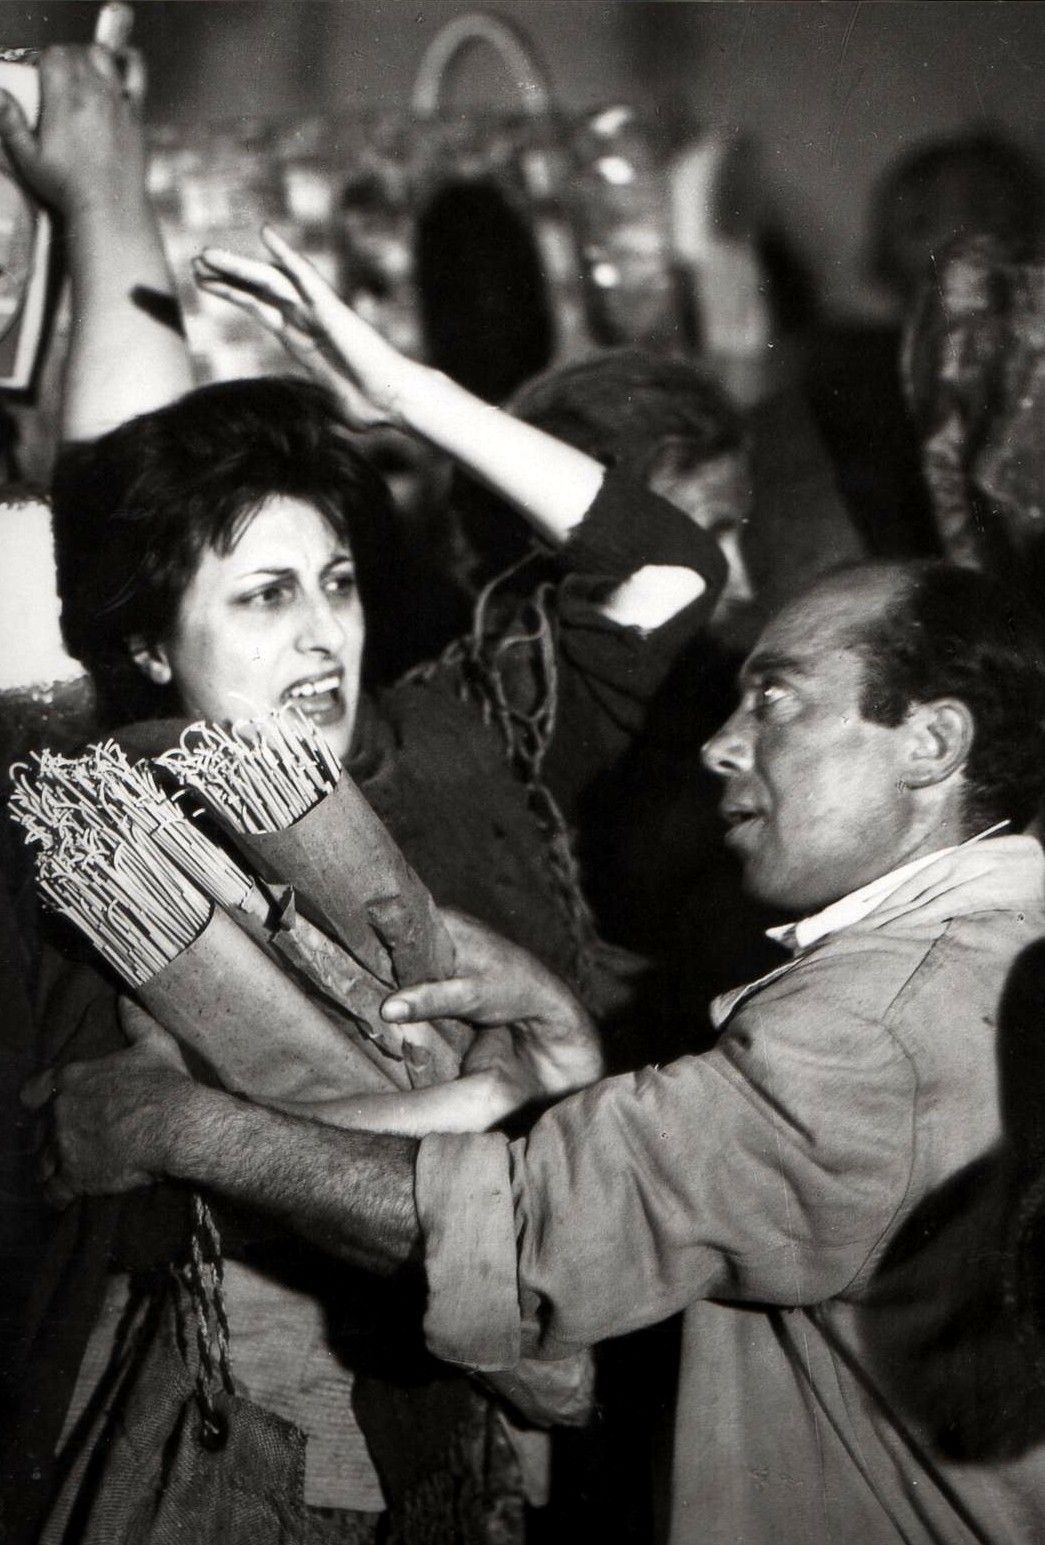 Anna Magnani in L'amore part 1 : Una Voce Umana directed by Roberto Rossellini, 1948